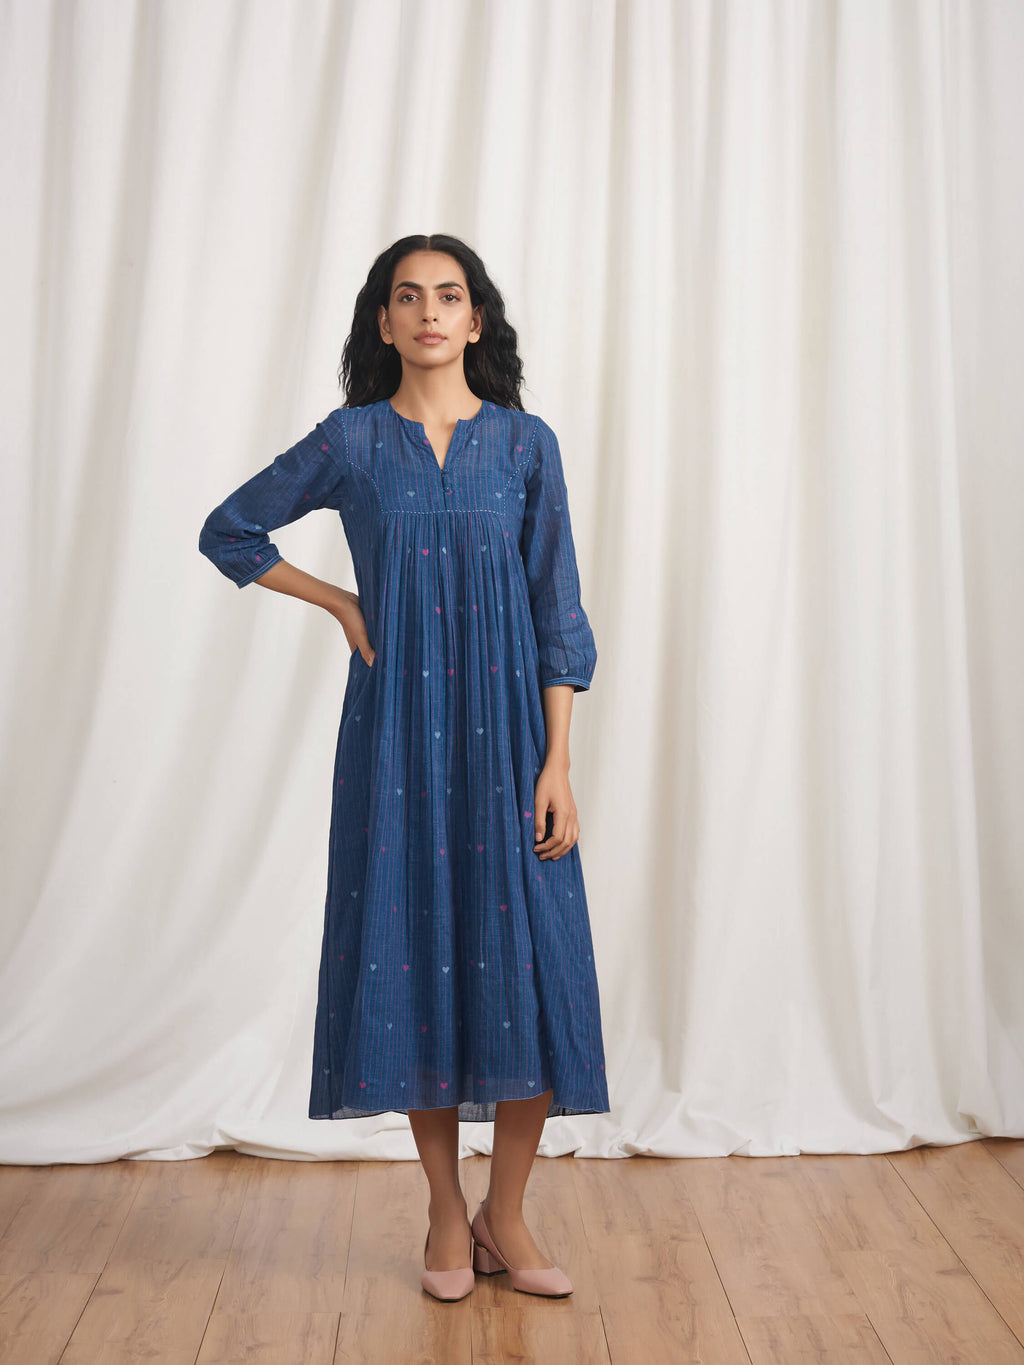 Indigo Skies Gathered Dress - BunaStudio